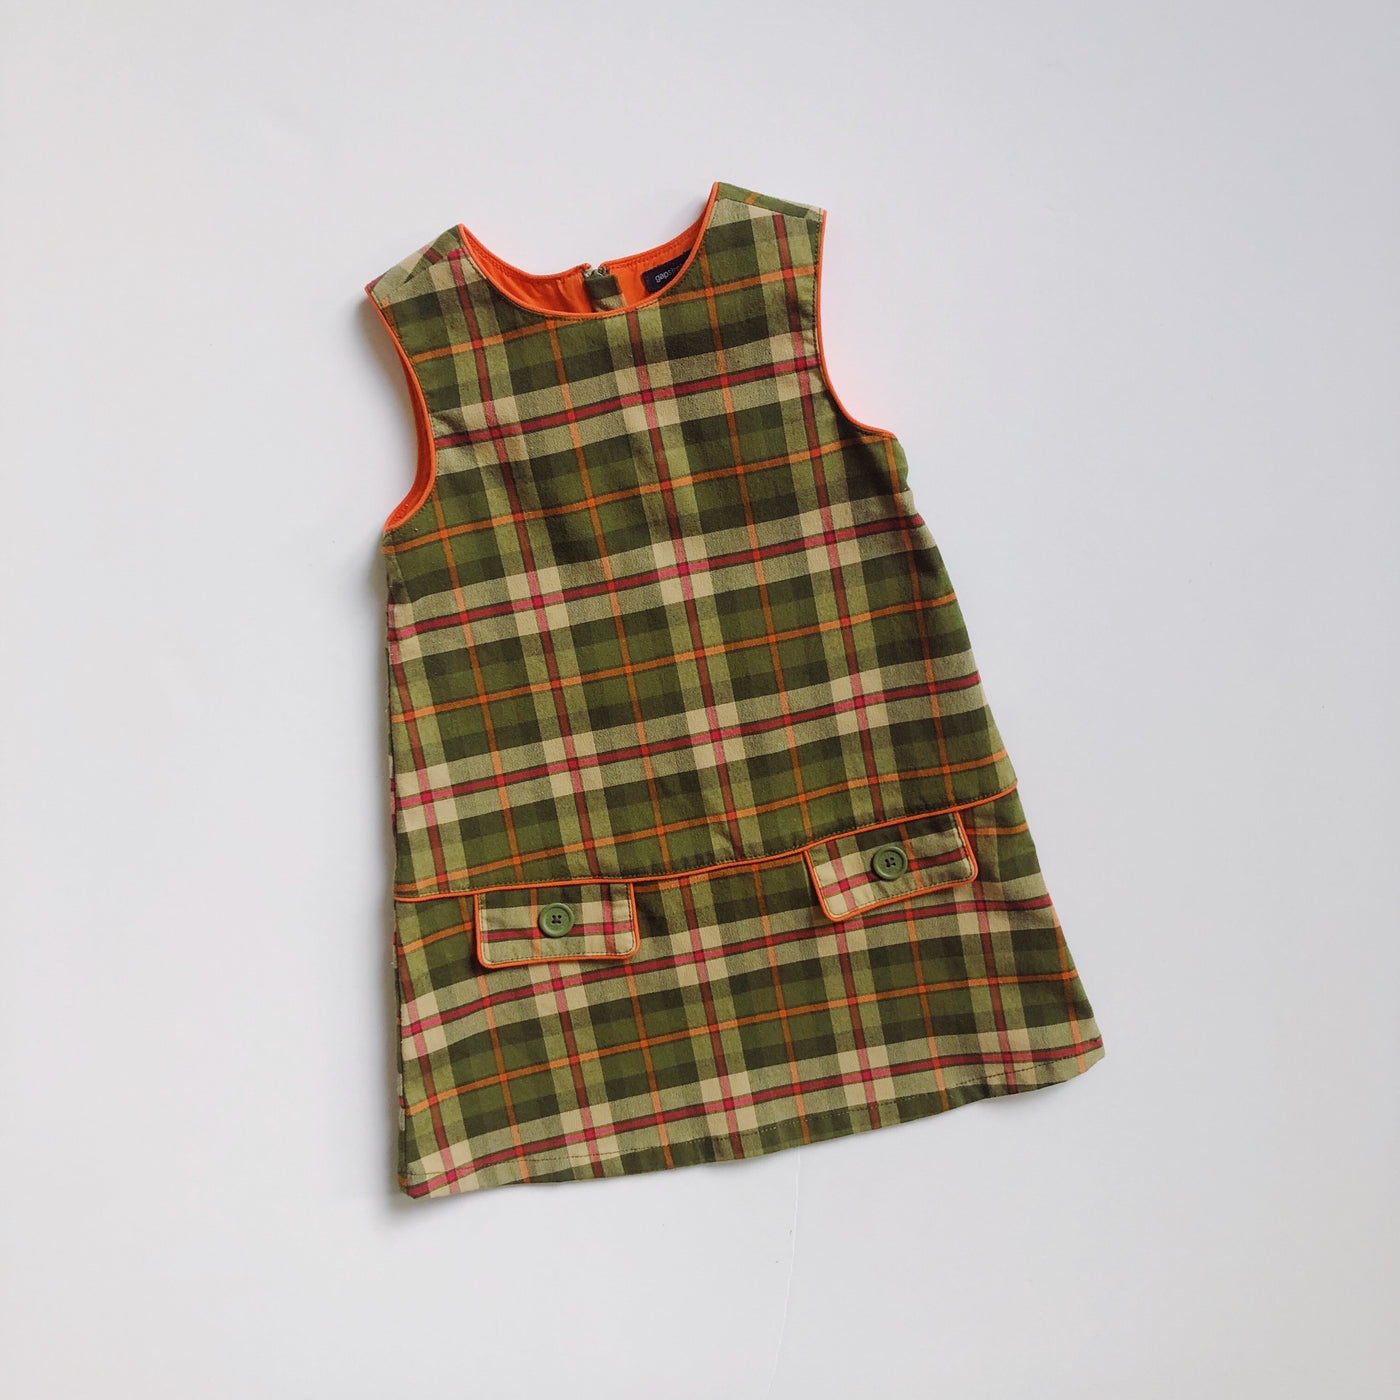 Baby Gap Plaid Schoolgirl Dress / Size 2T